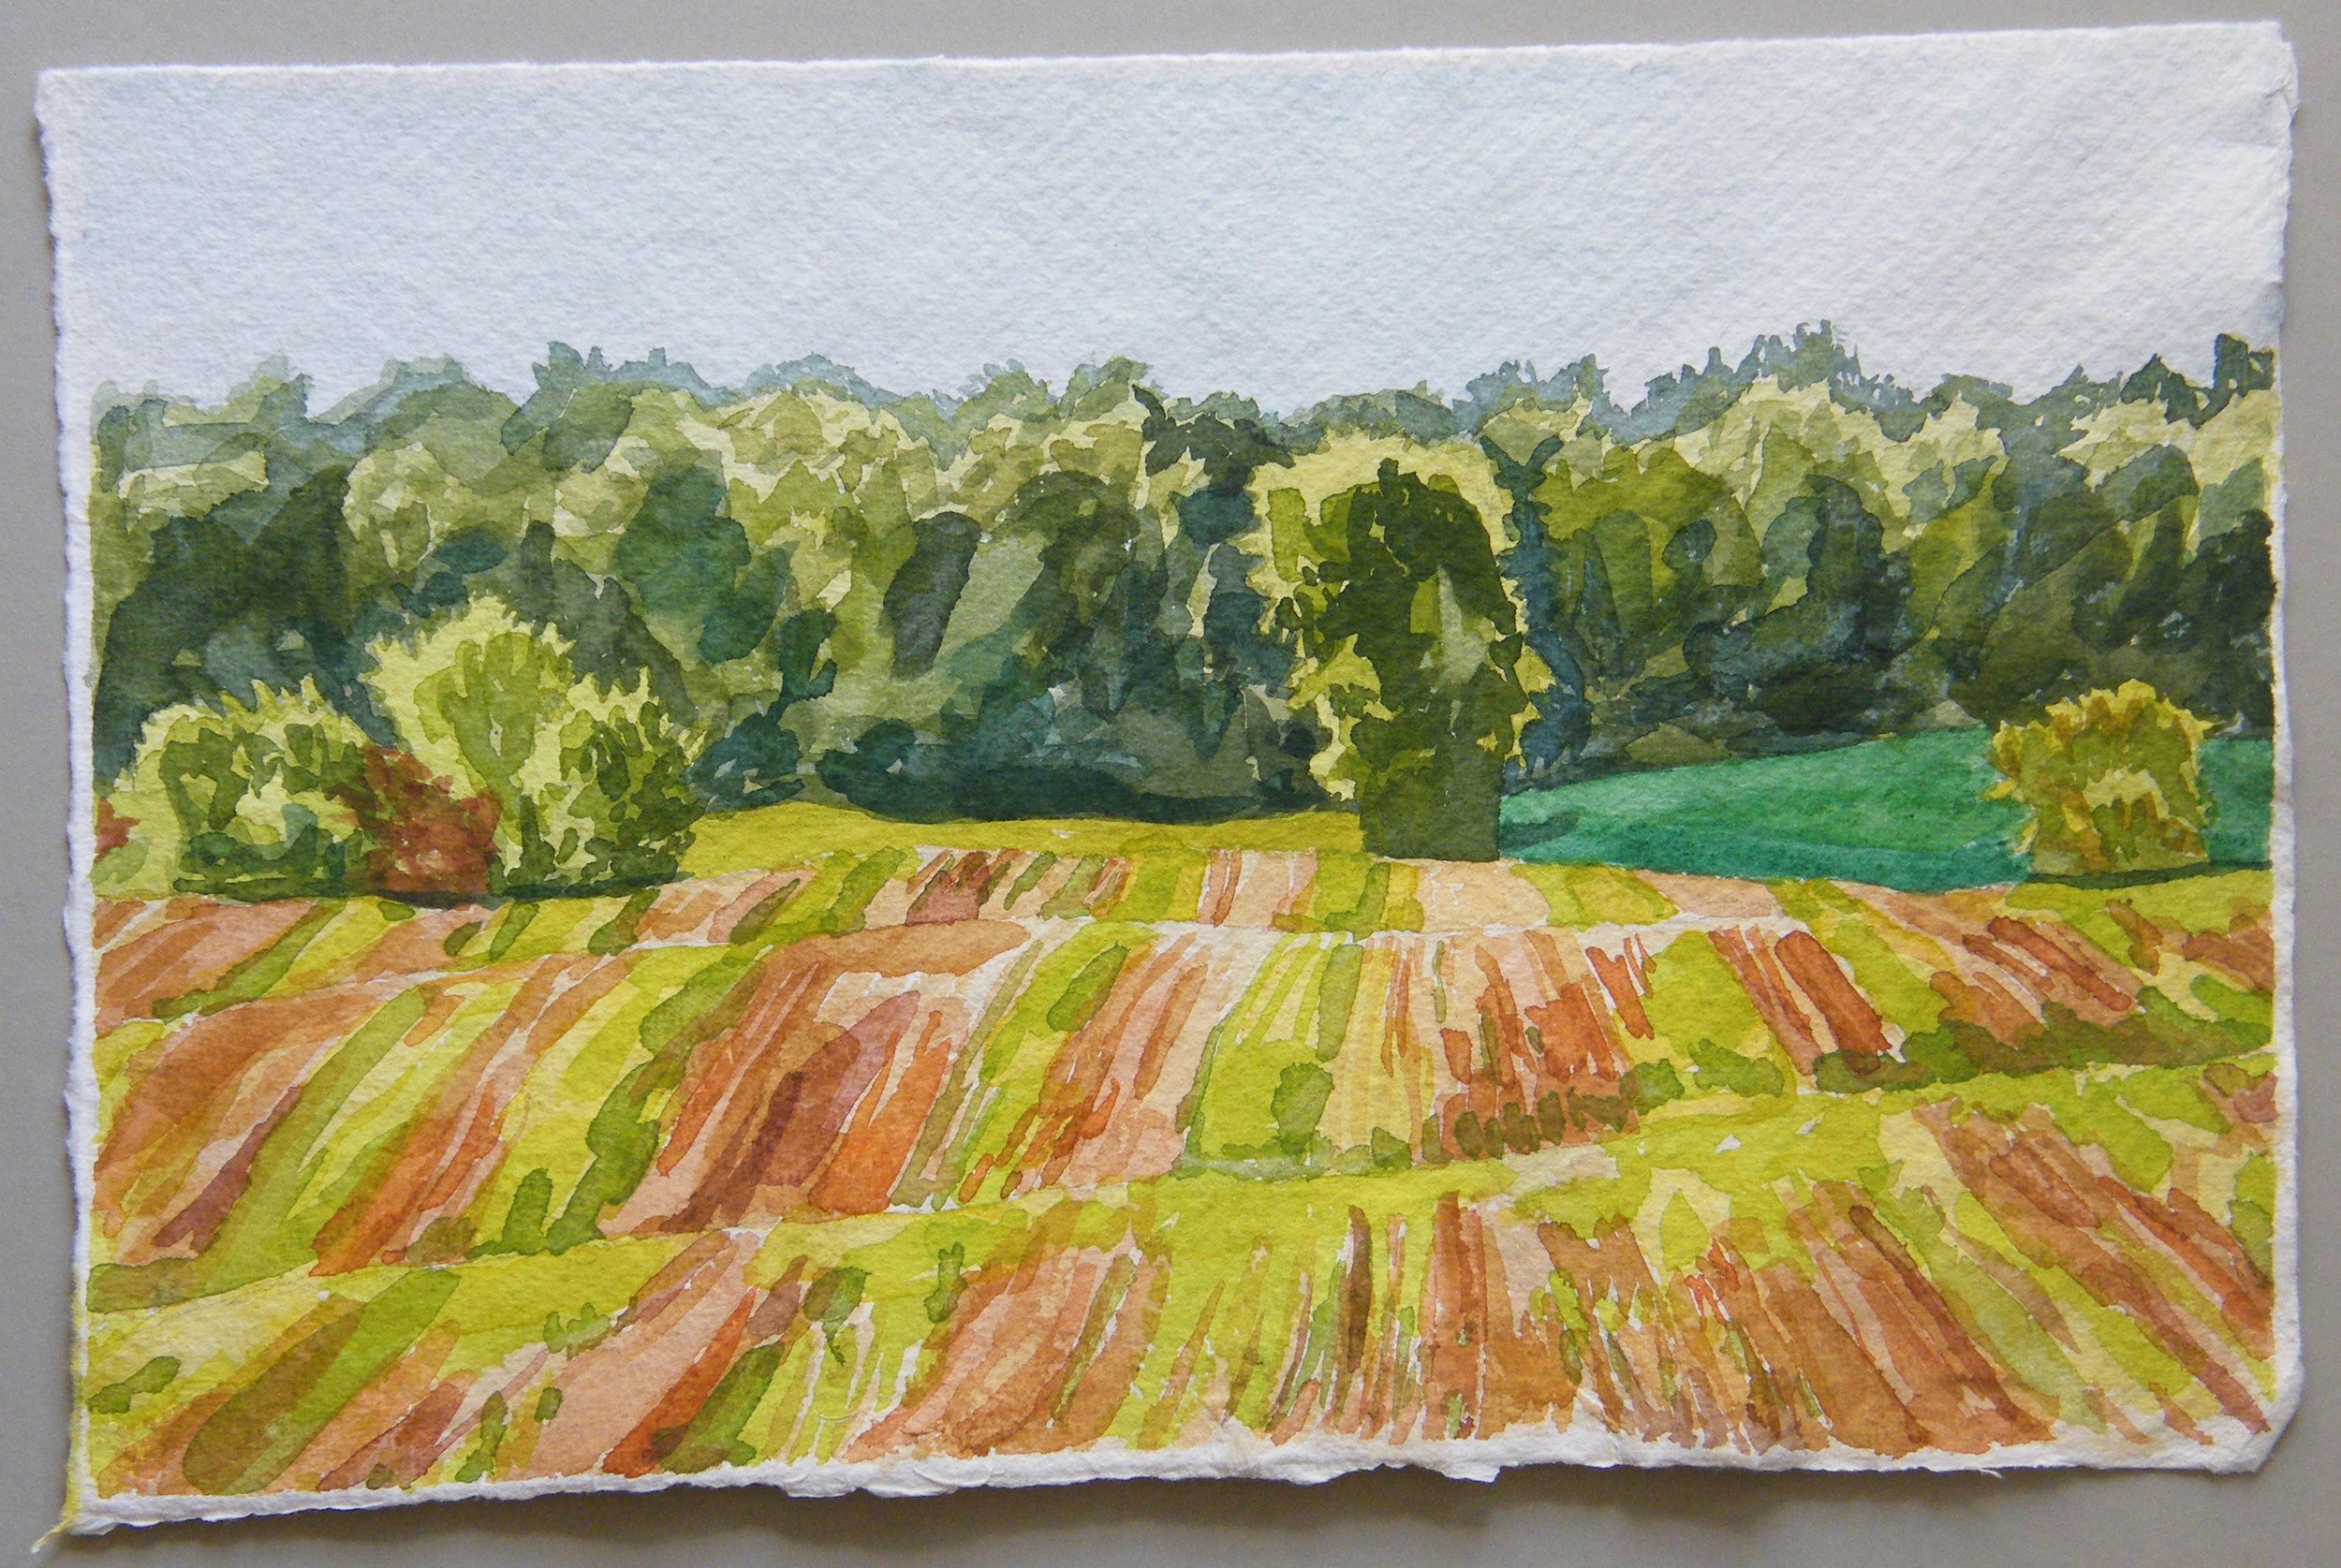 Done! Waterworks Road, Early Fall 2. This piece is on Indian Village handmade watercolor paper.  Each of the finished paintings here are on different papers and that affects the colors and the way the papers handle the paint.  I love painting on 2 different kinds of paper to keep in interesting and challenging for me.